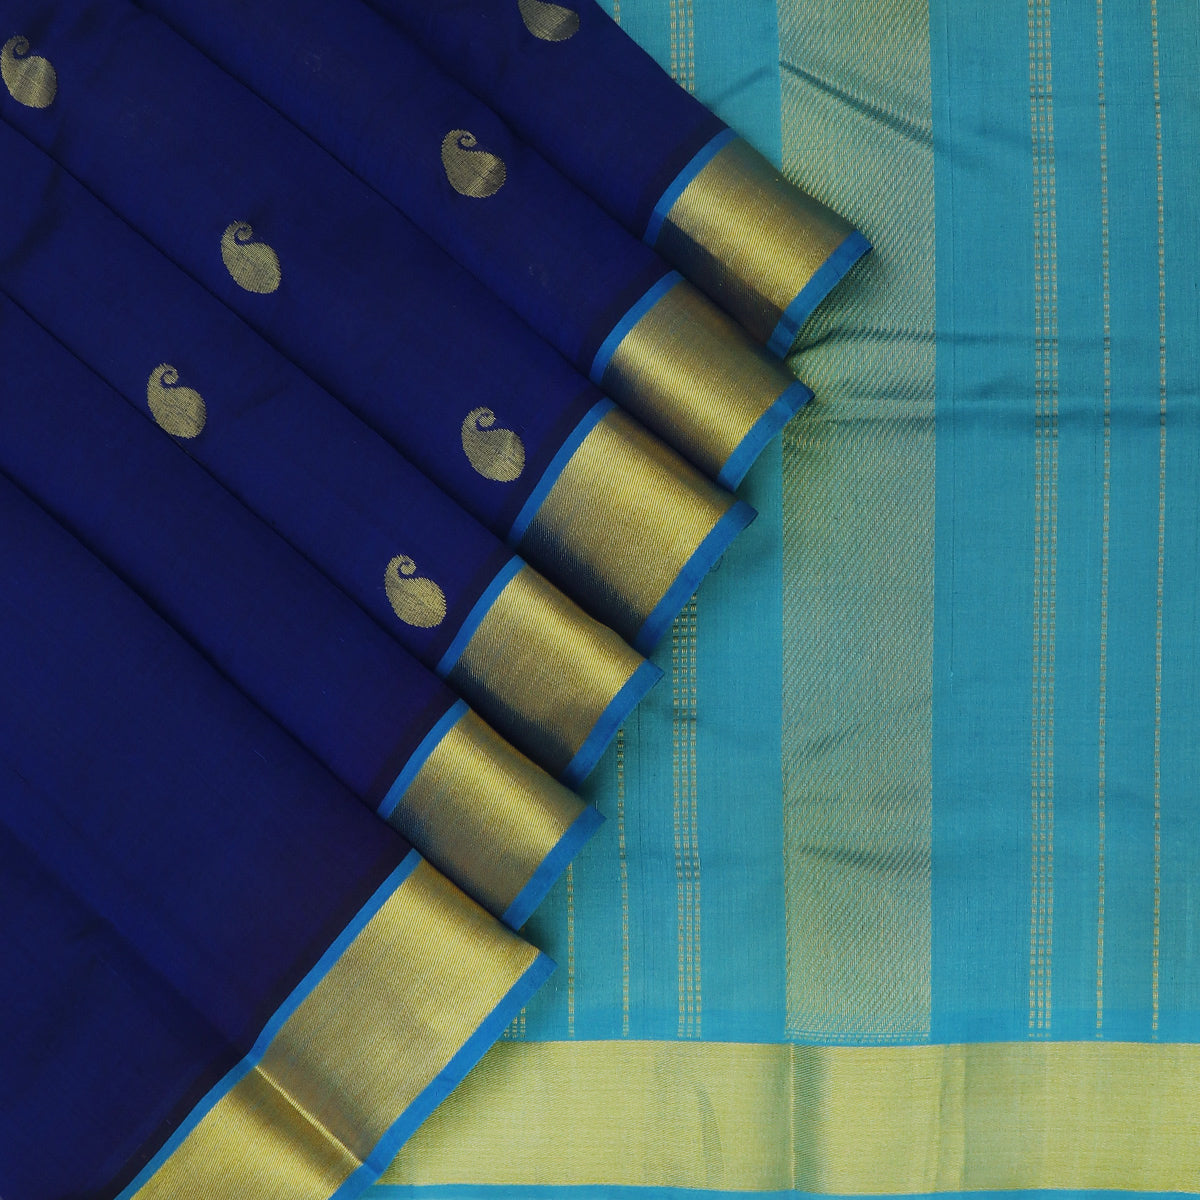 Silk Cotton Saree-Blue with Buttas and Sky blue with Simple Zari border